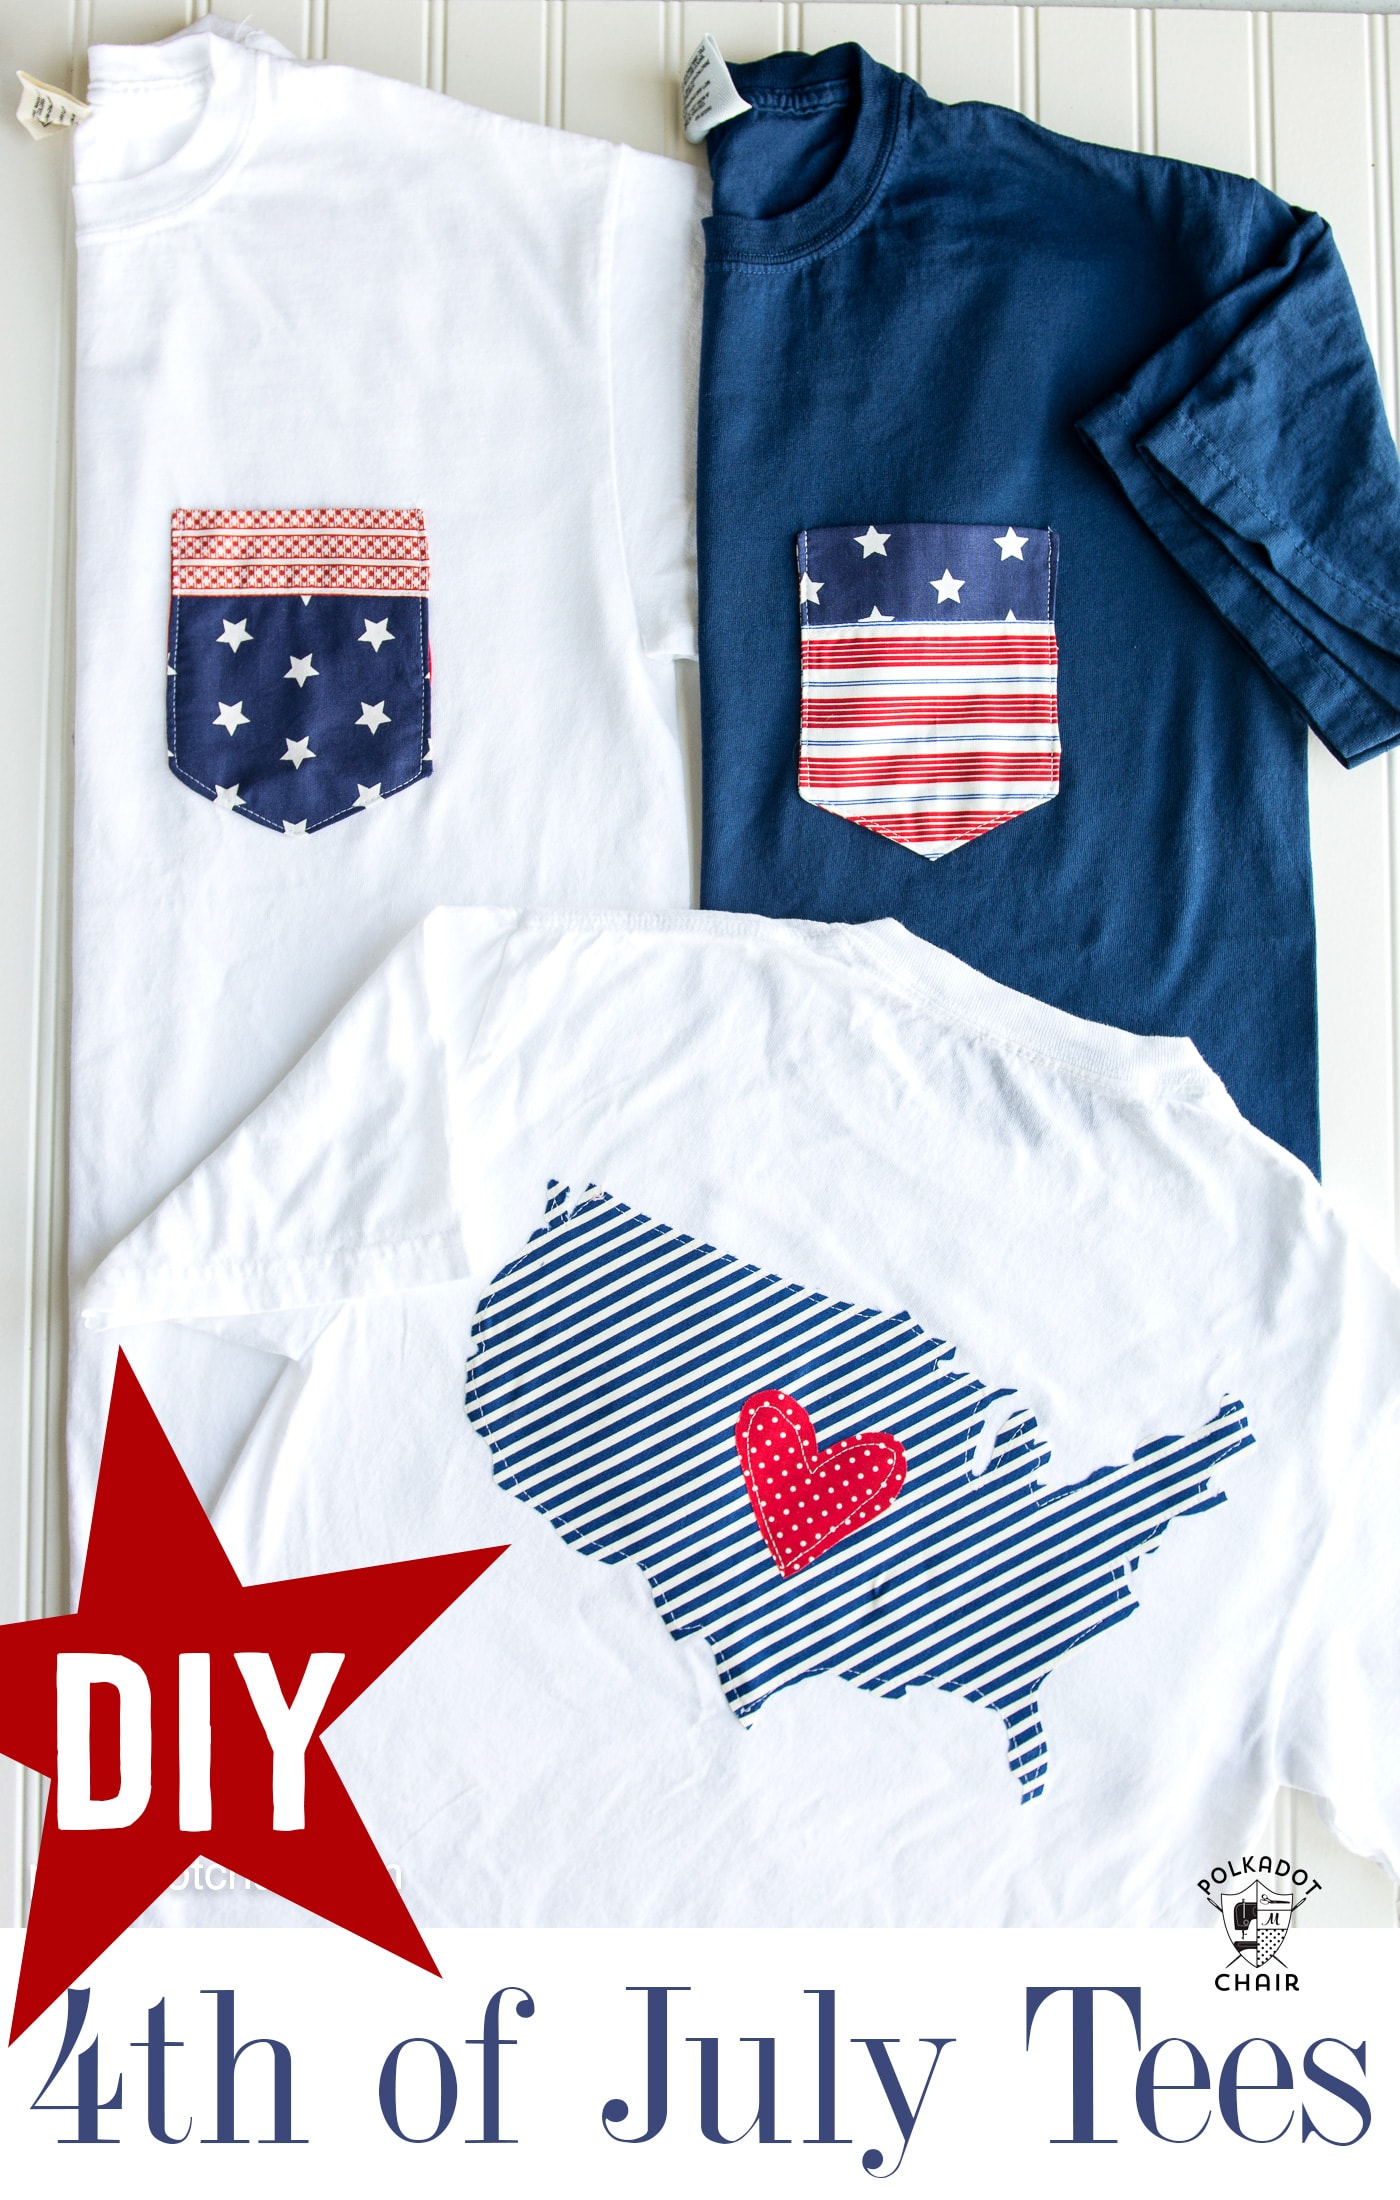 DIY Pocket Tee for the 4th of July - includes templates for the pocket and outline of the USA